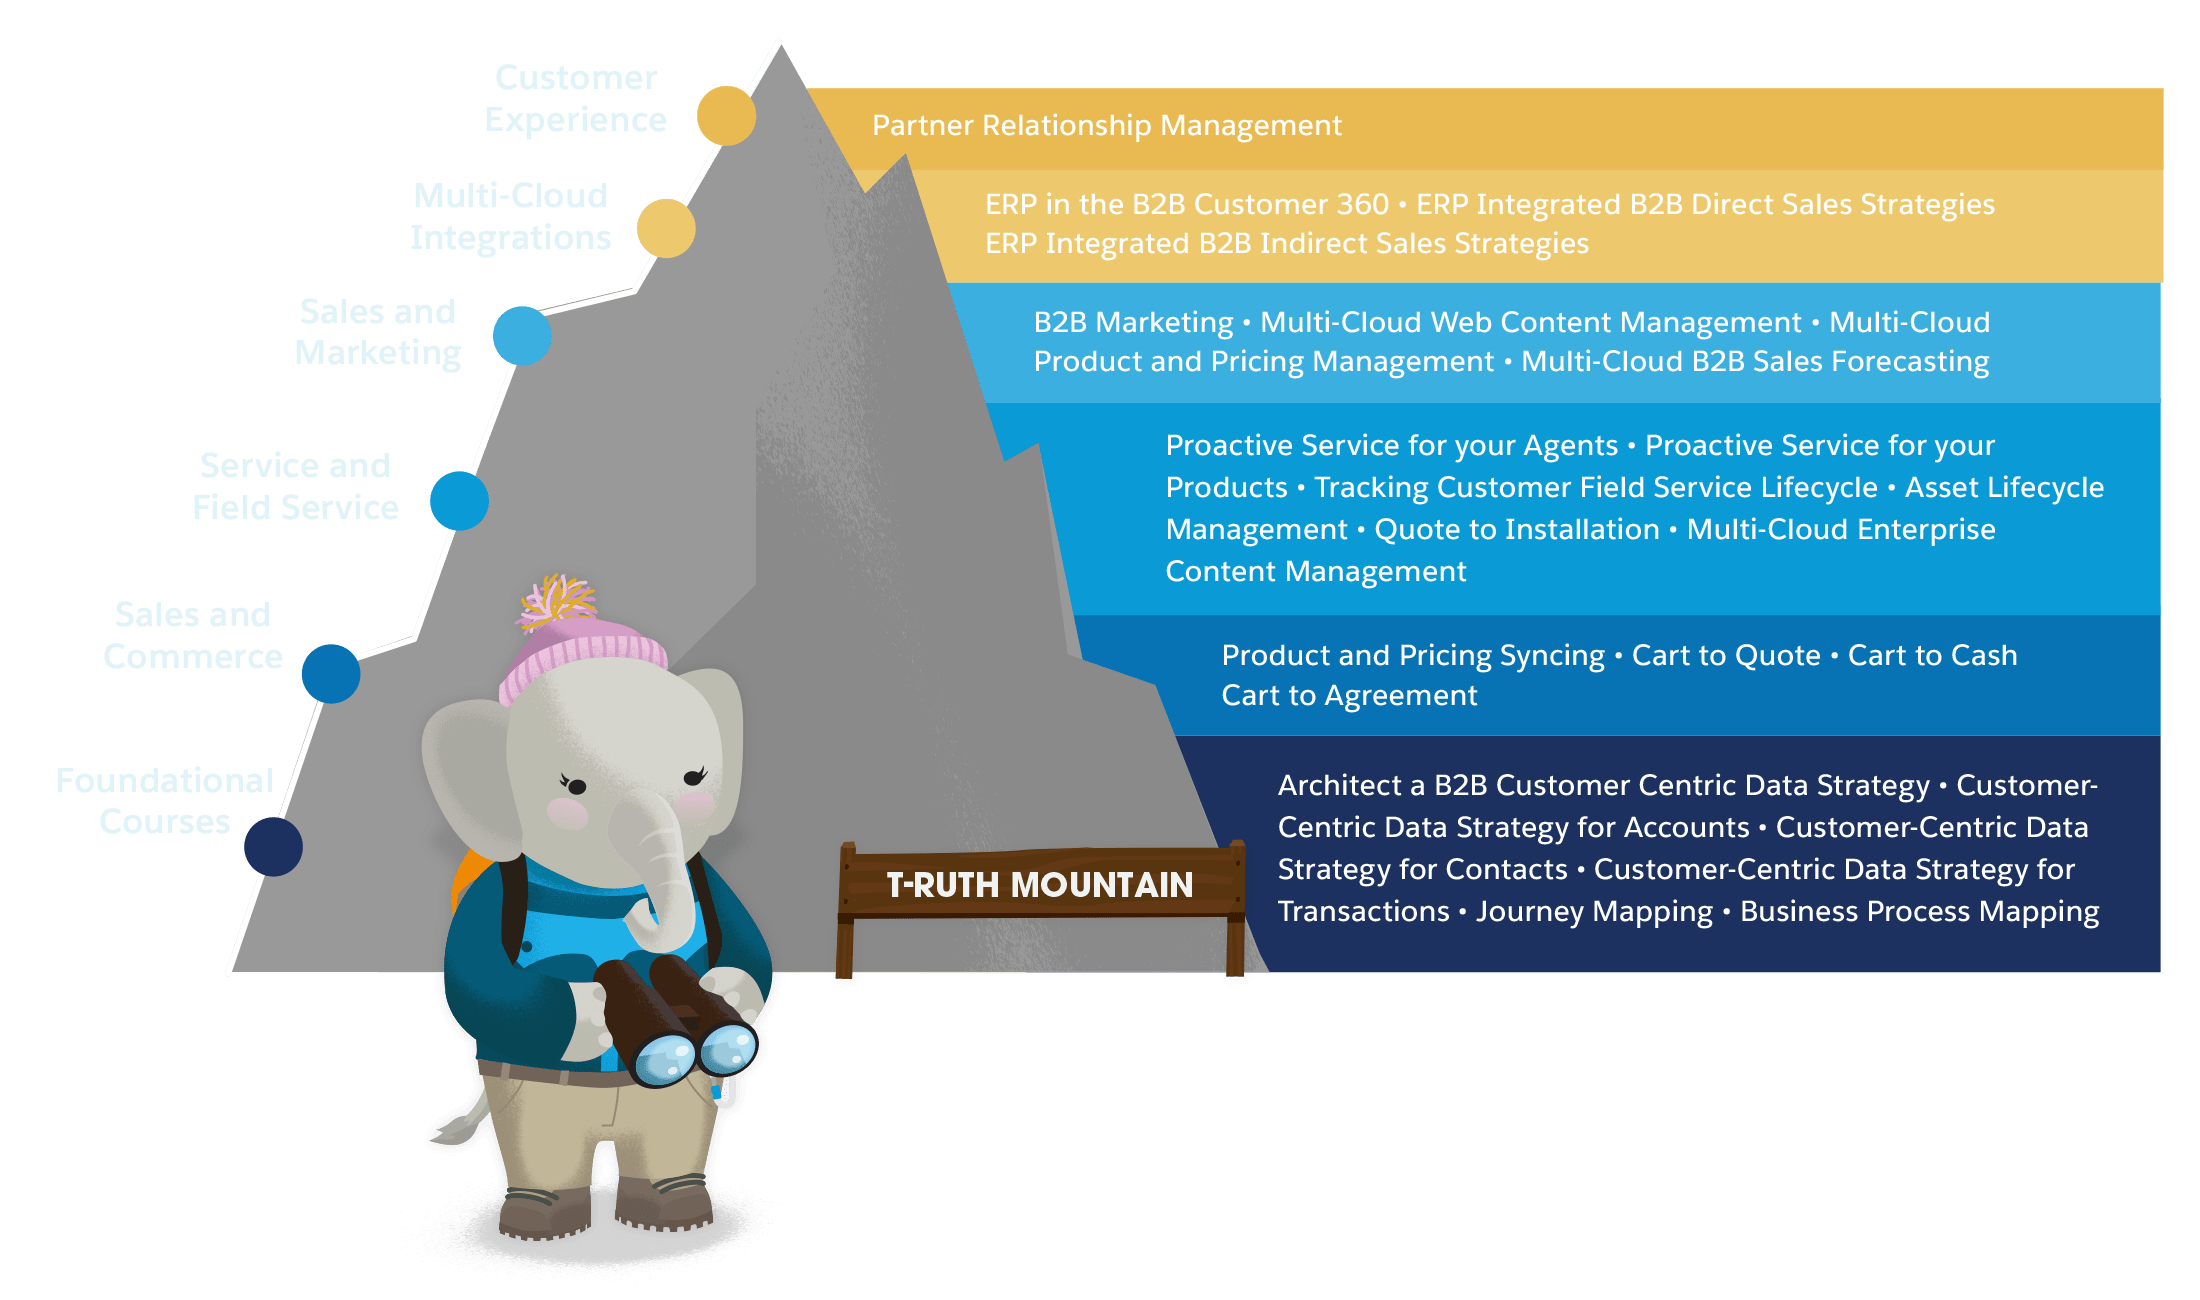 The path to B2B Solution Architect Certification